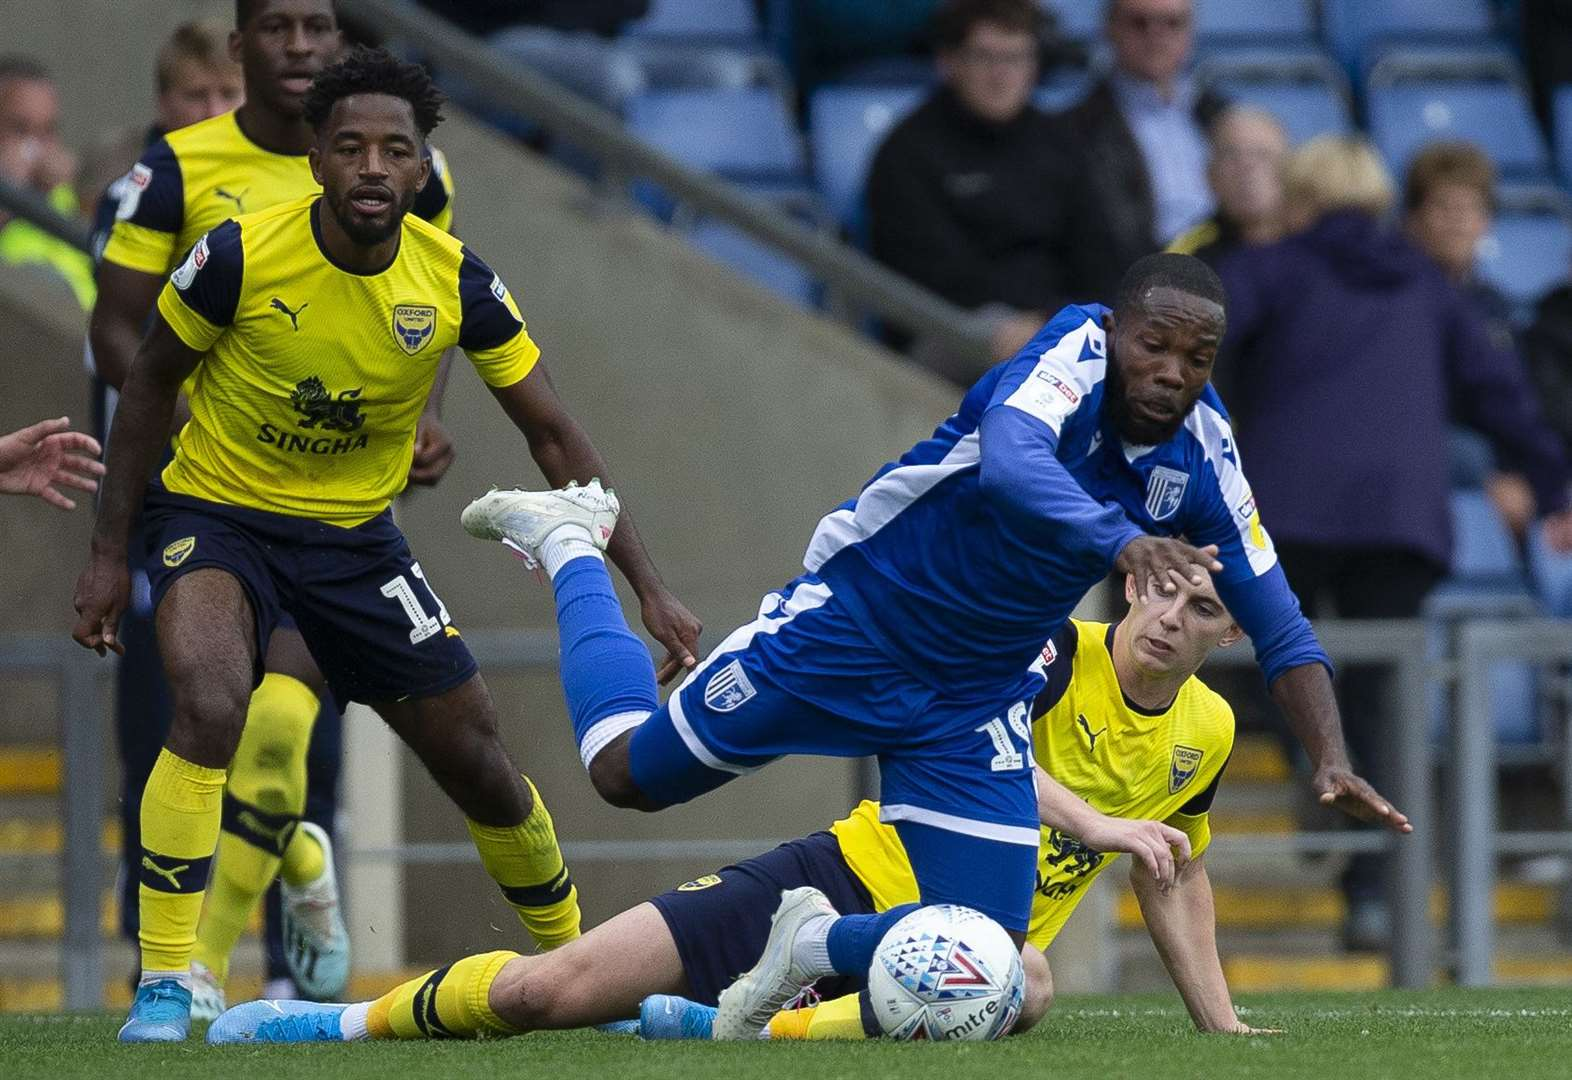 Report: Gills second best